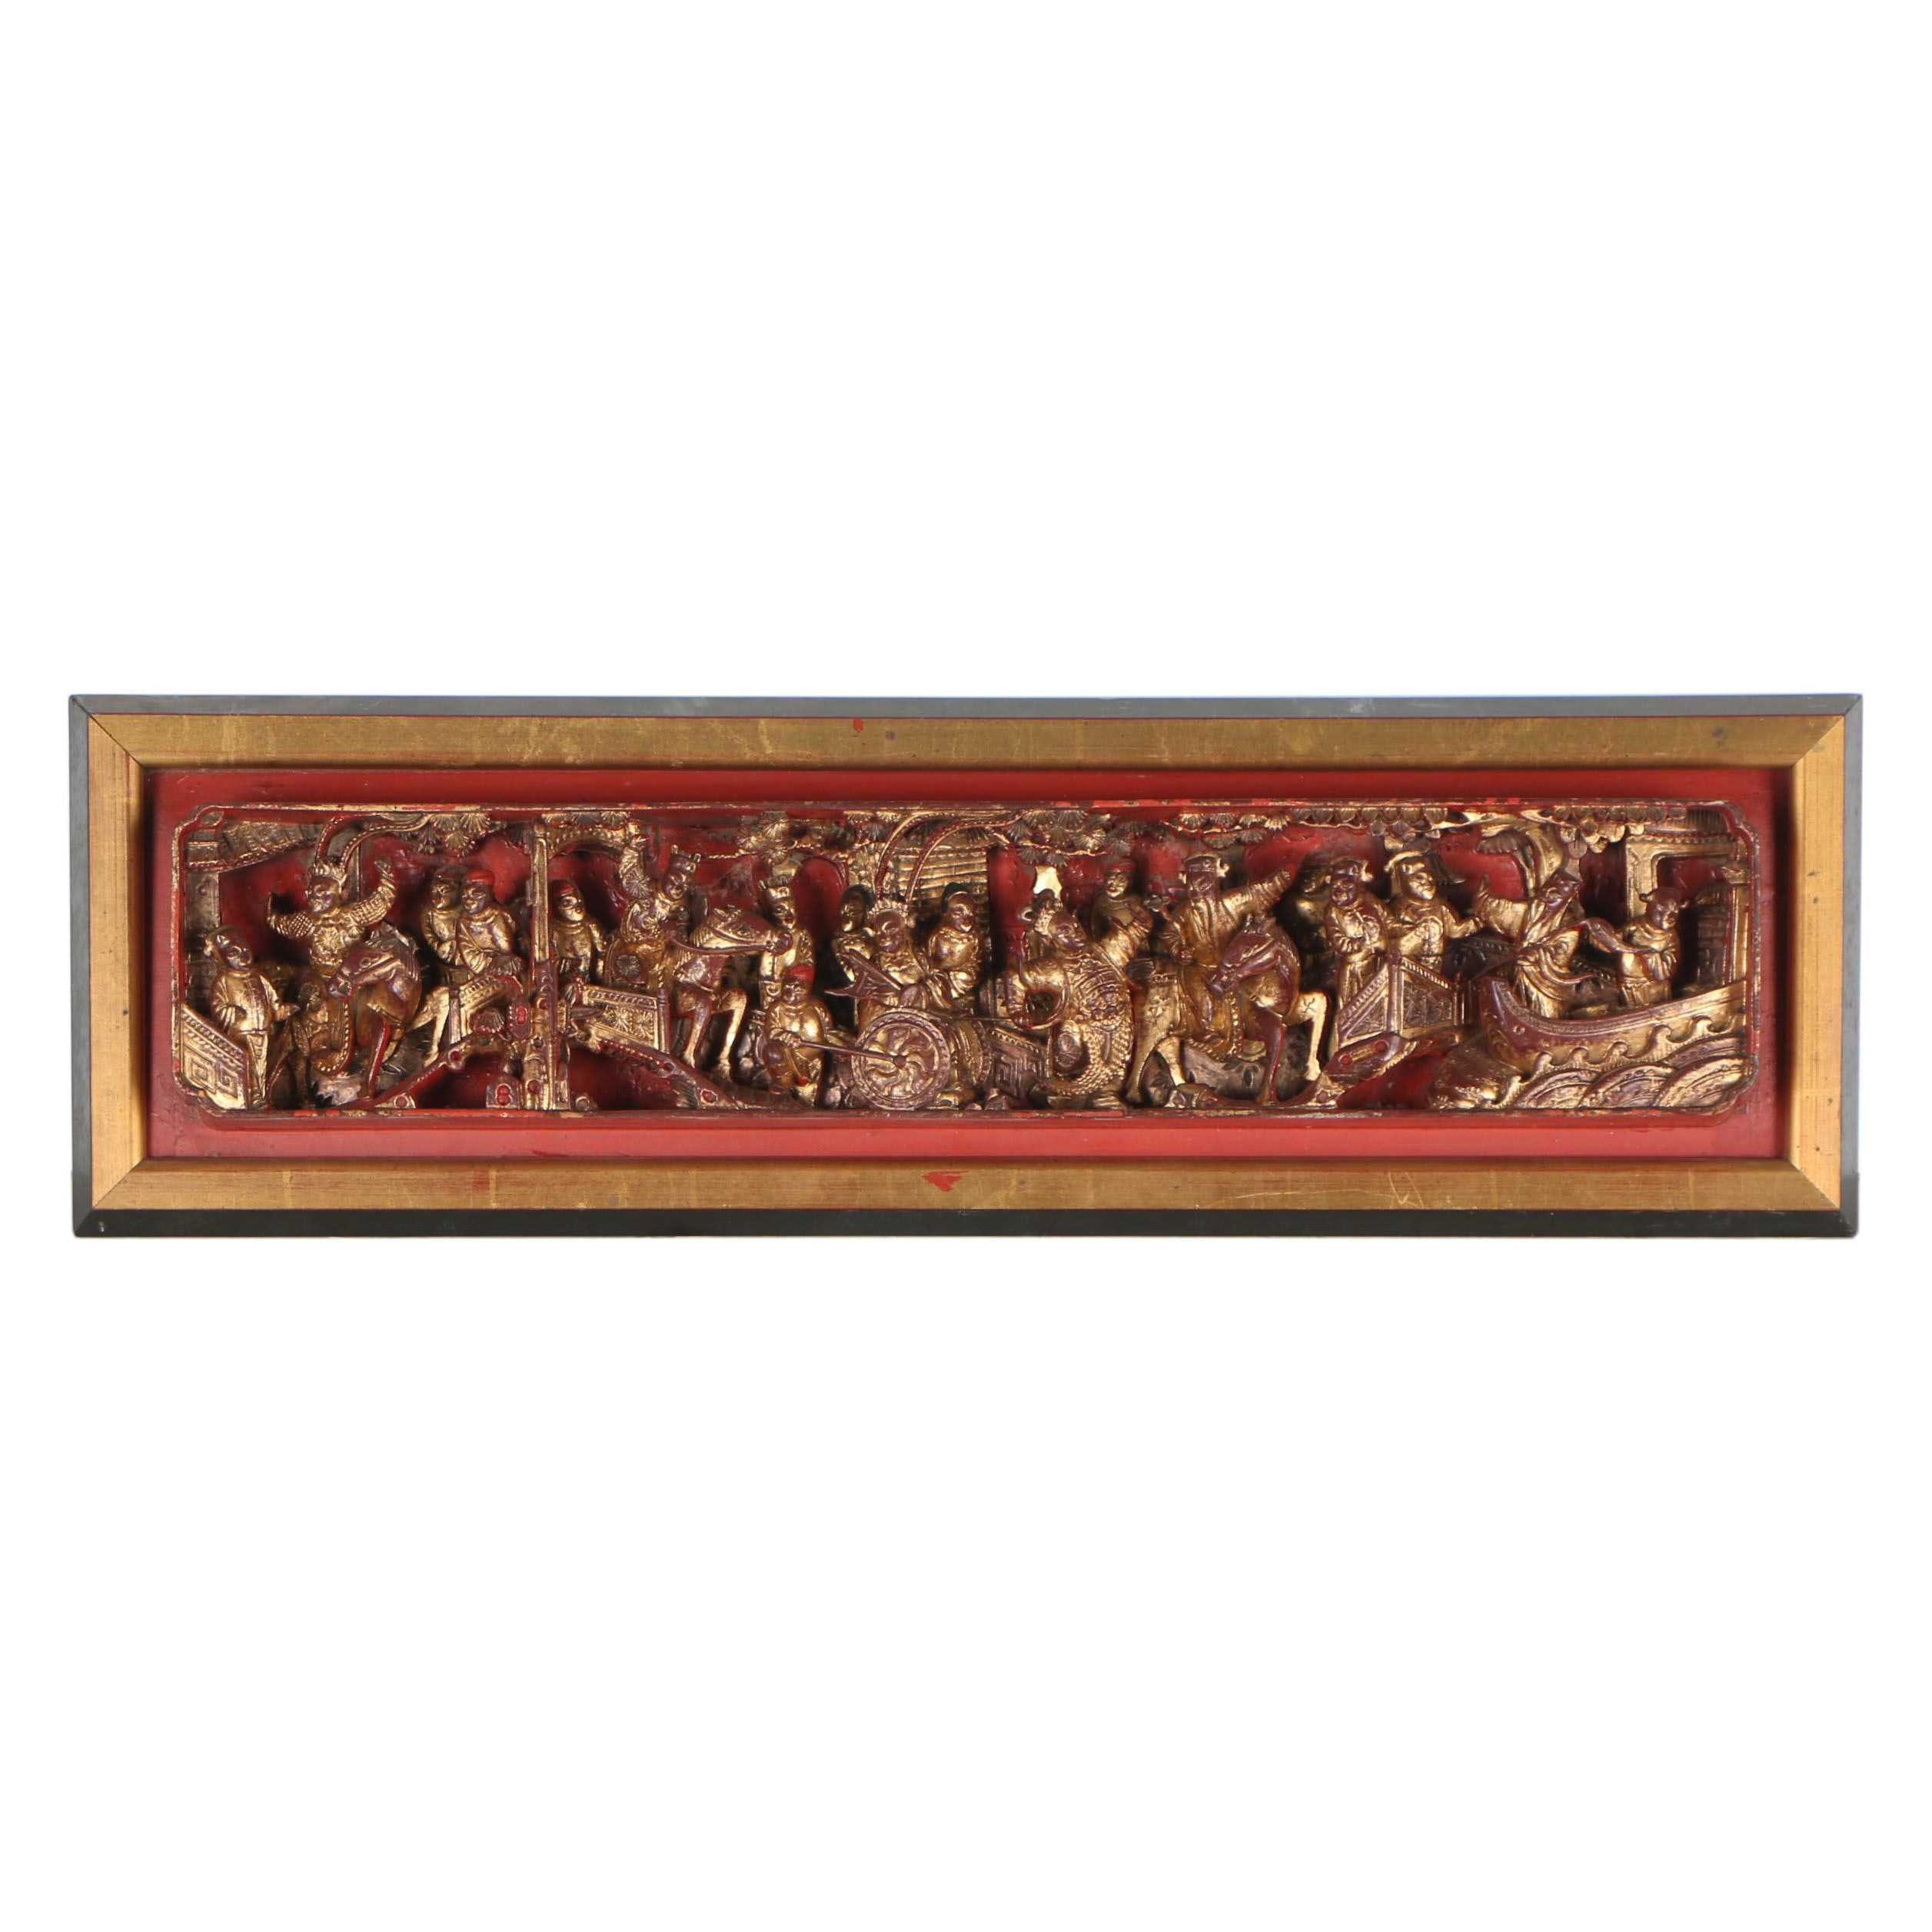 Chinese Gilt and Lacquer Relief Panel